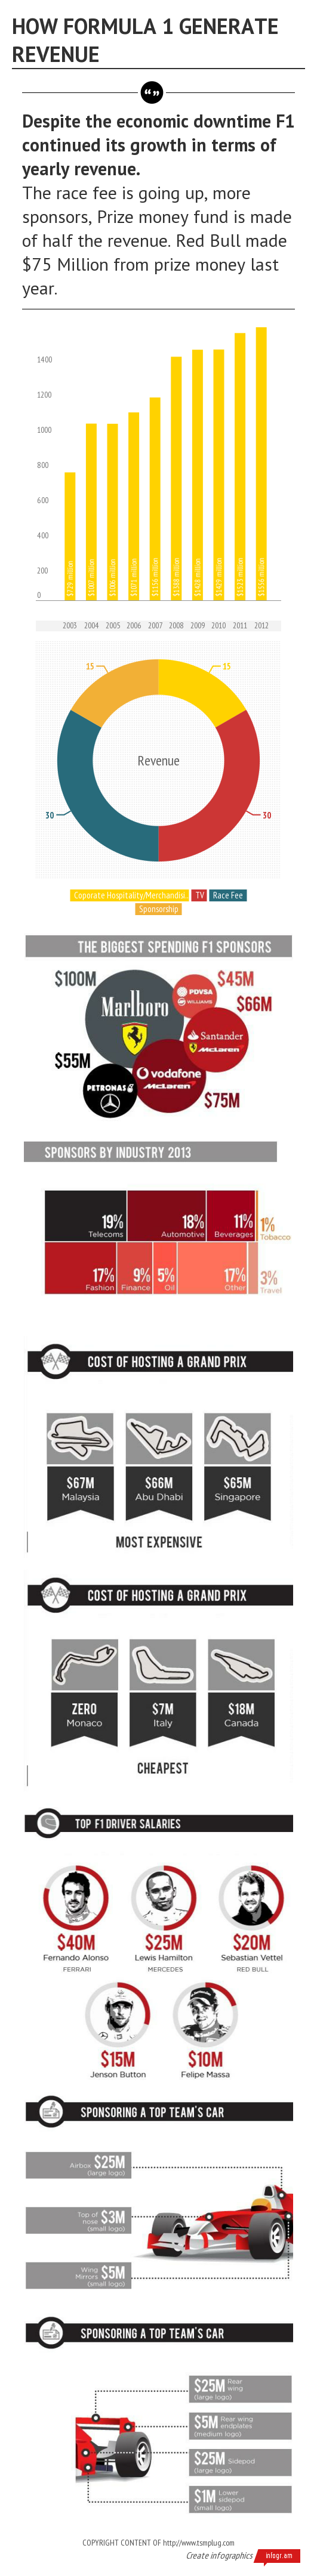 Formula 1 revenue generation 2014